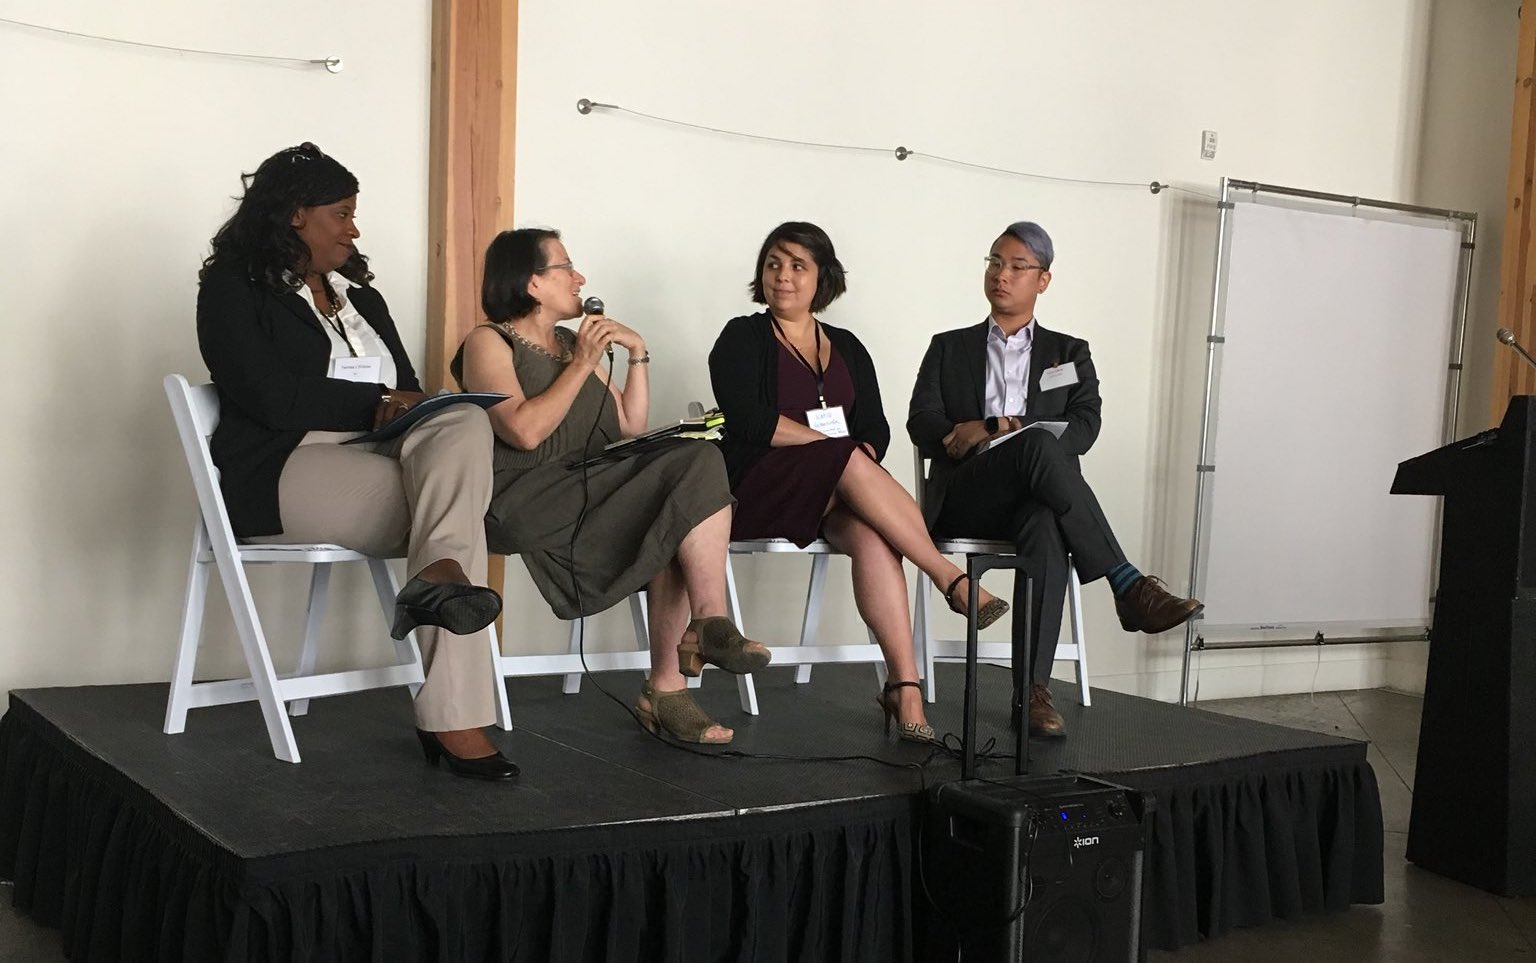 Cal Walks ED Tony Dang moderating opening panel of Transportation Equity Summit featuring Ellen Greenberg, Katie Valenzuela, and Tamika L'Ecluse